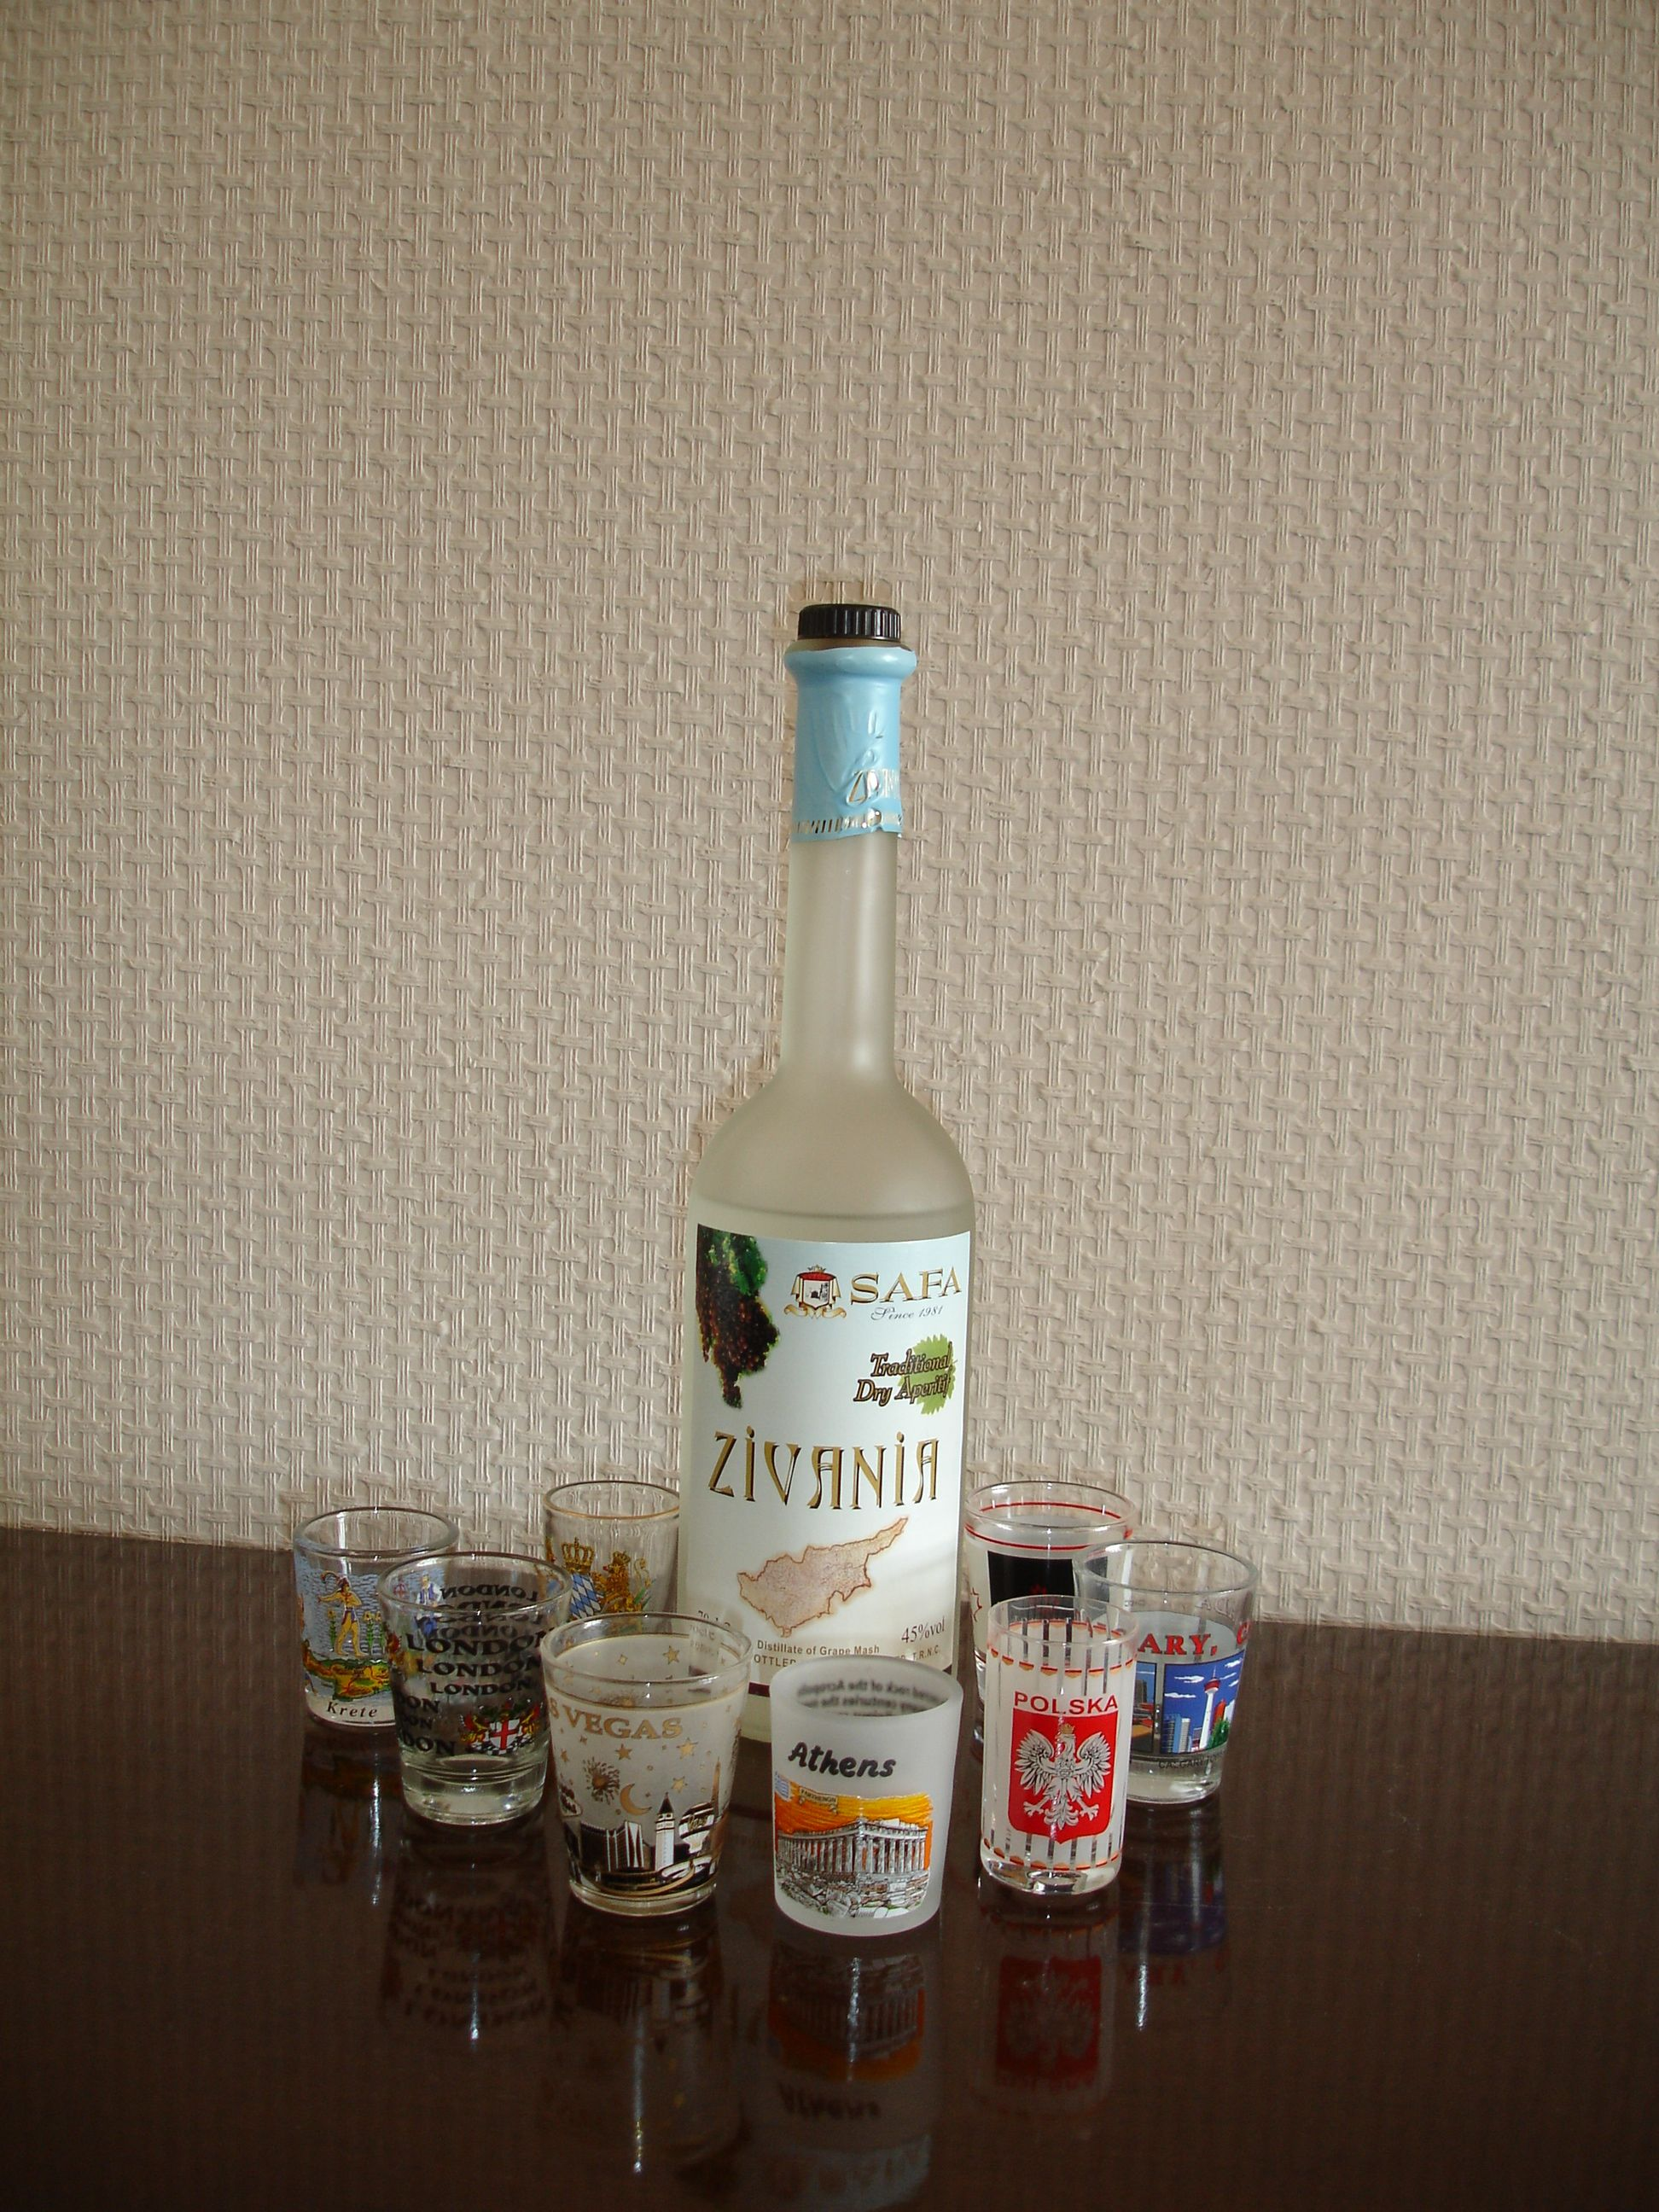 Zivania & shot glasses from all over the world